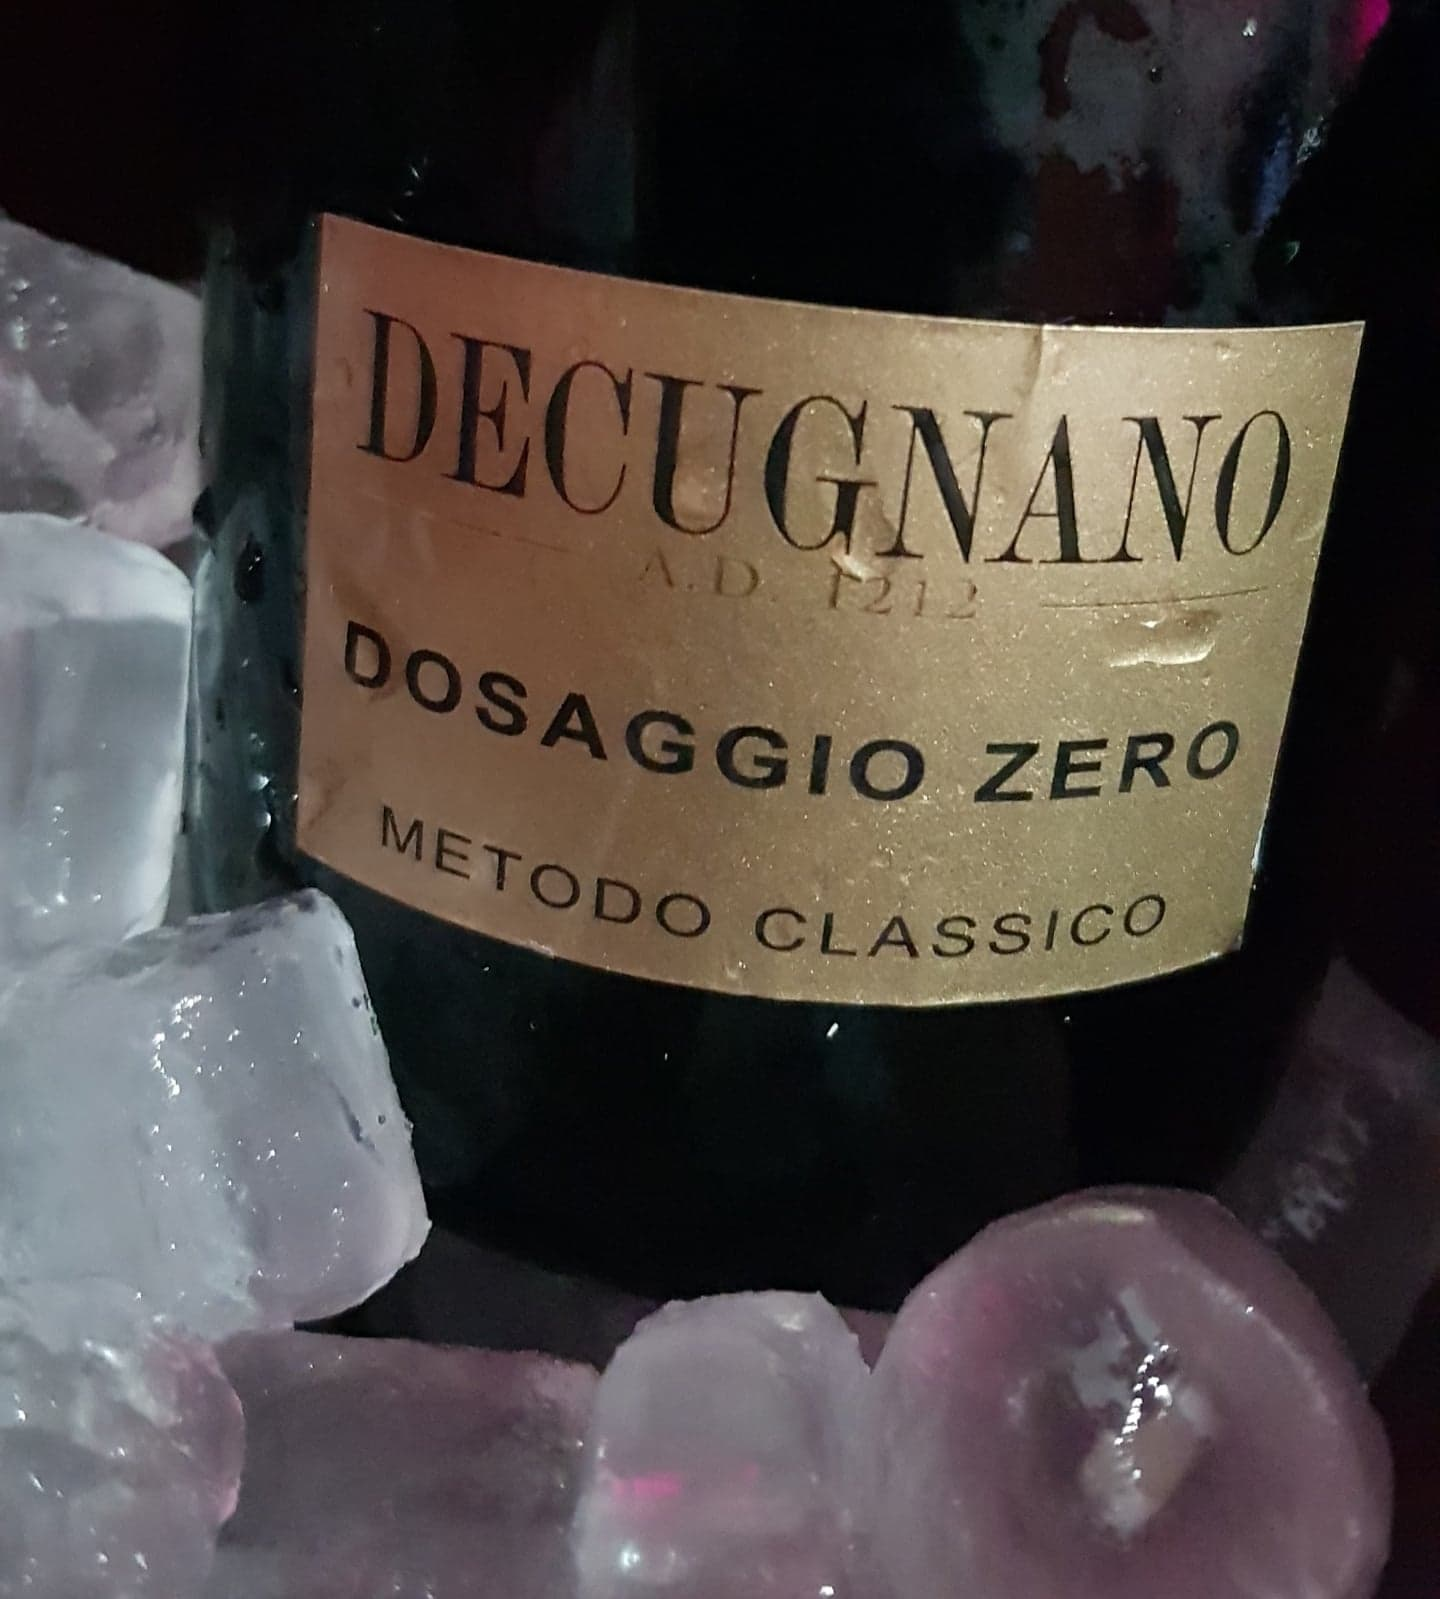 Only Wine Festival - Decugnano